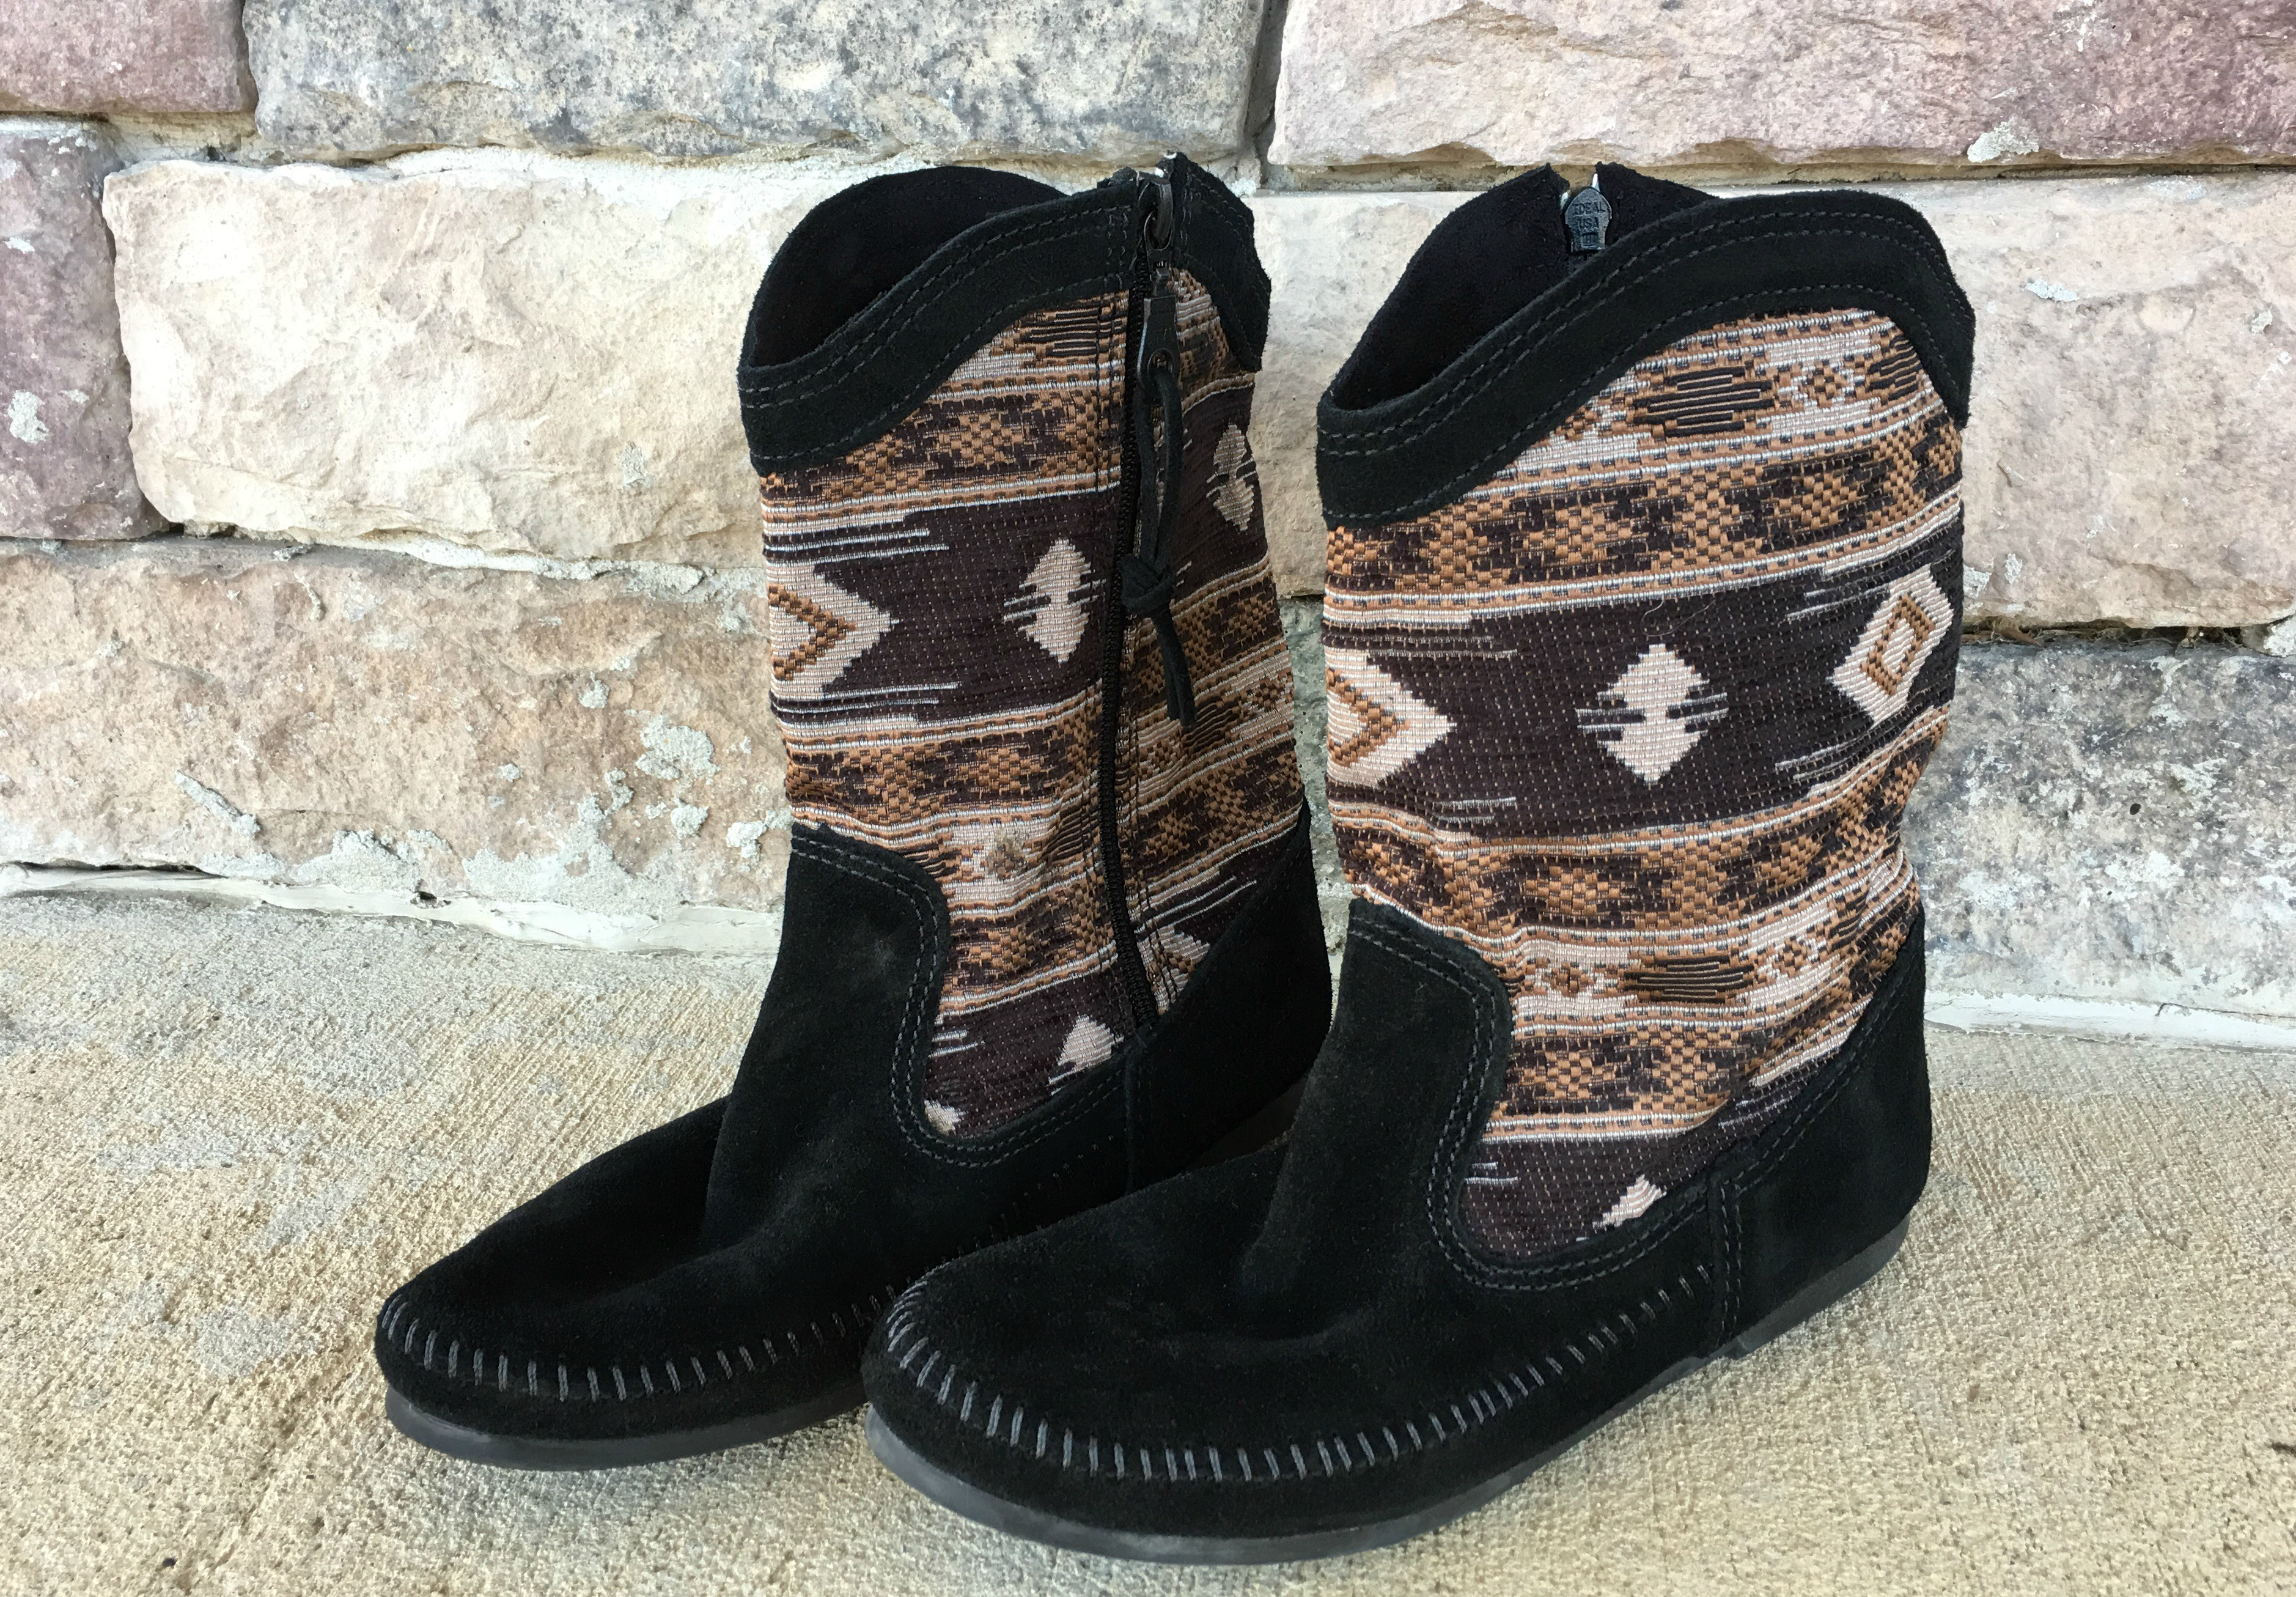 tapestry boots at northstyle momma in flip flops